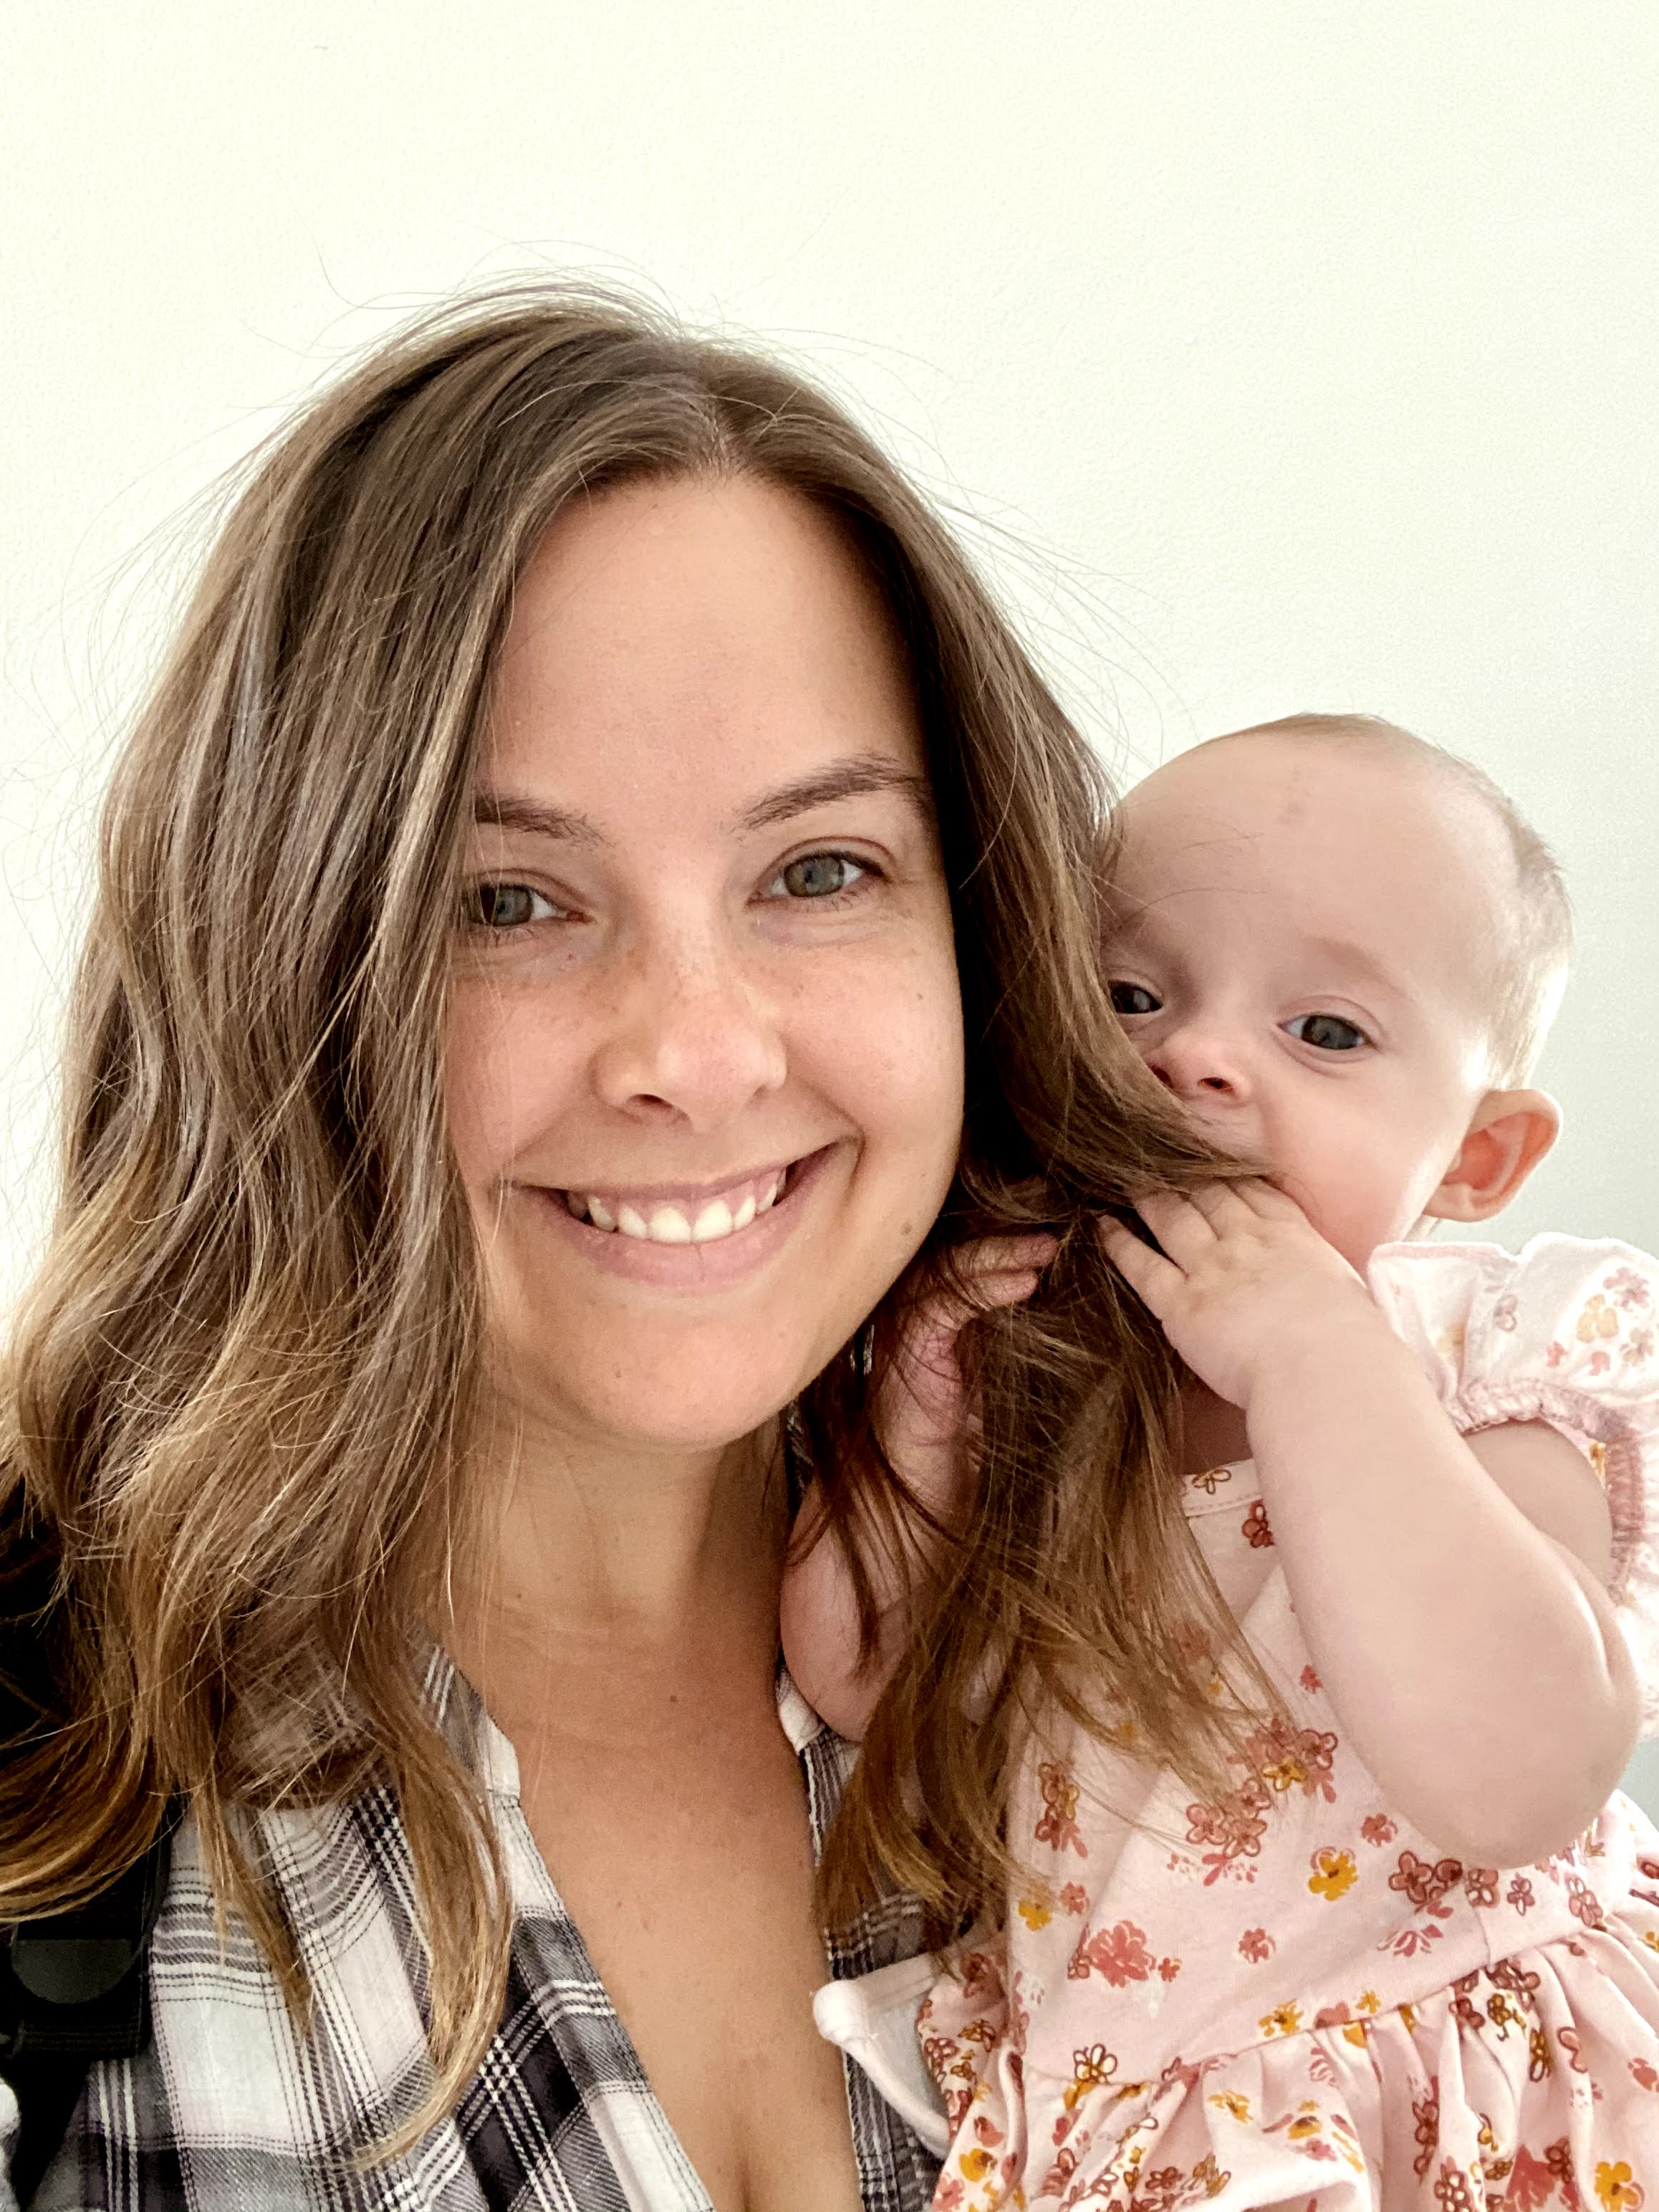 A smiling woman is holding a baby.